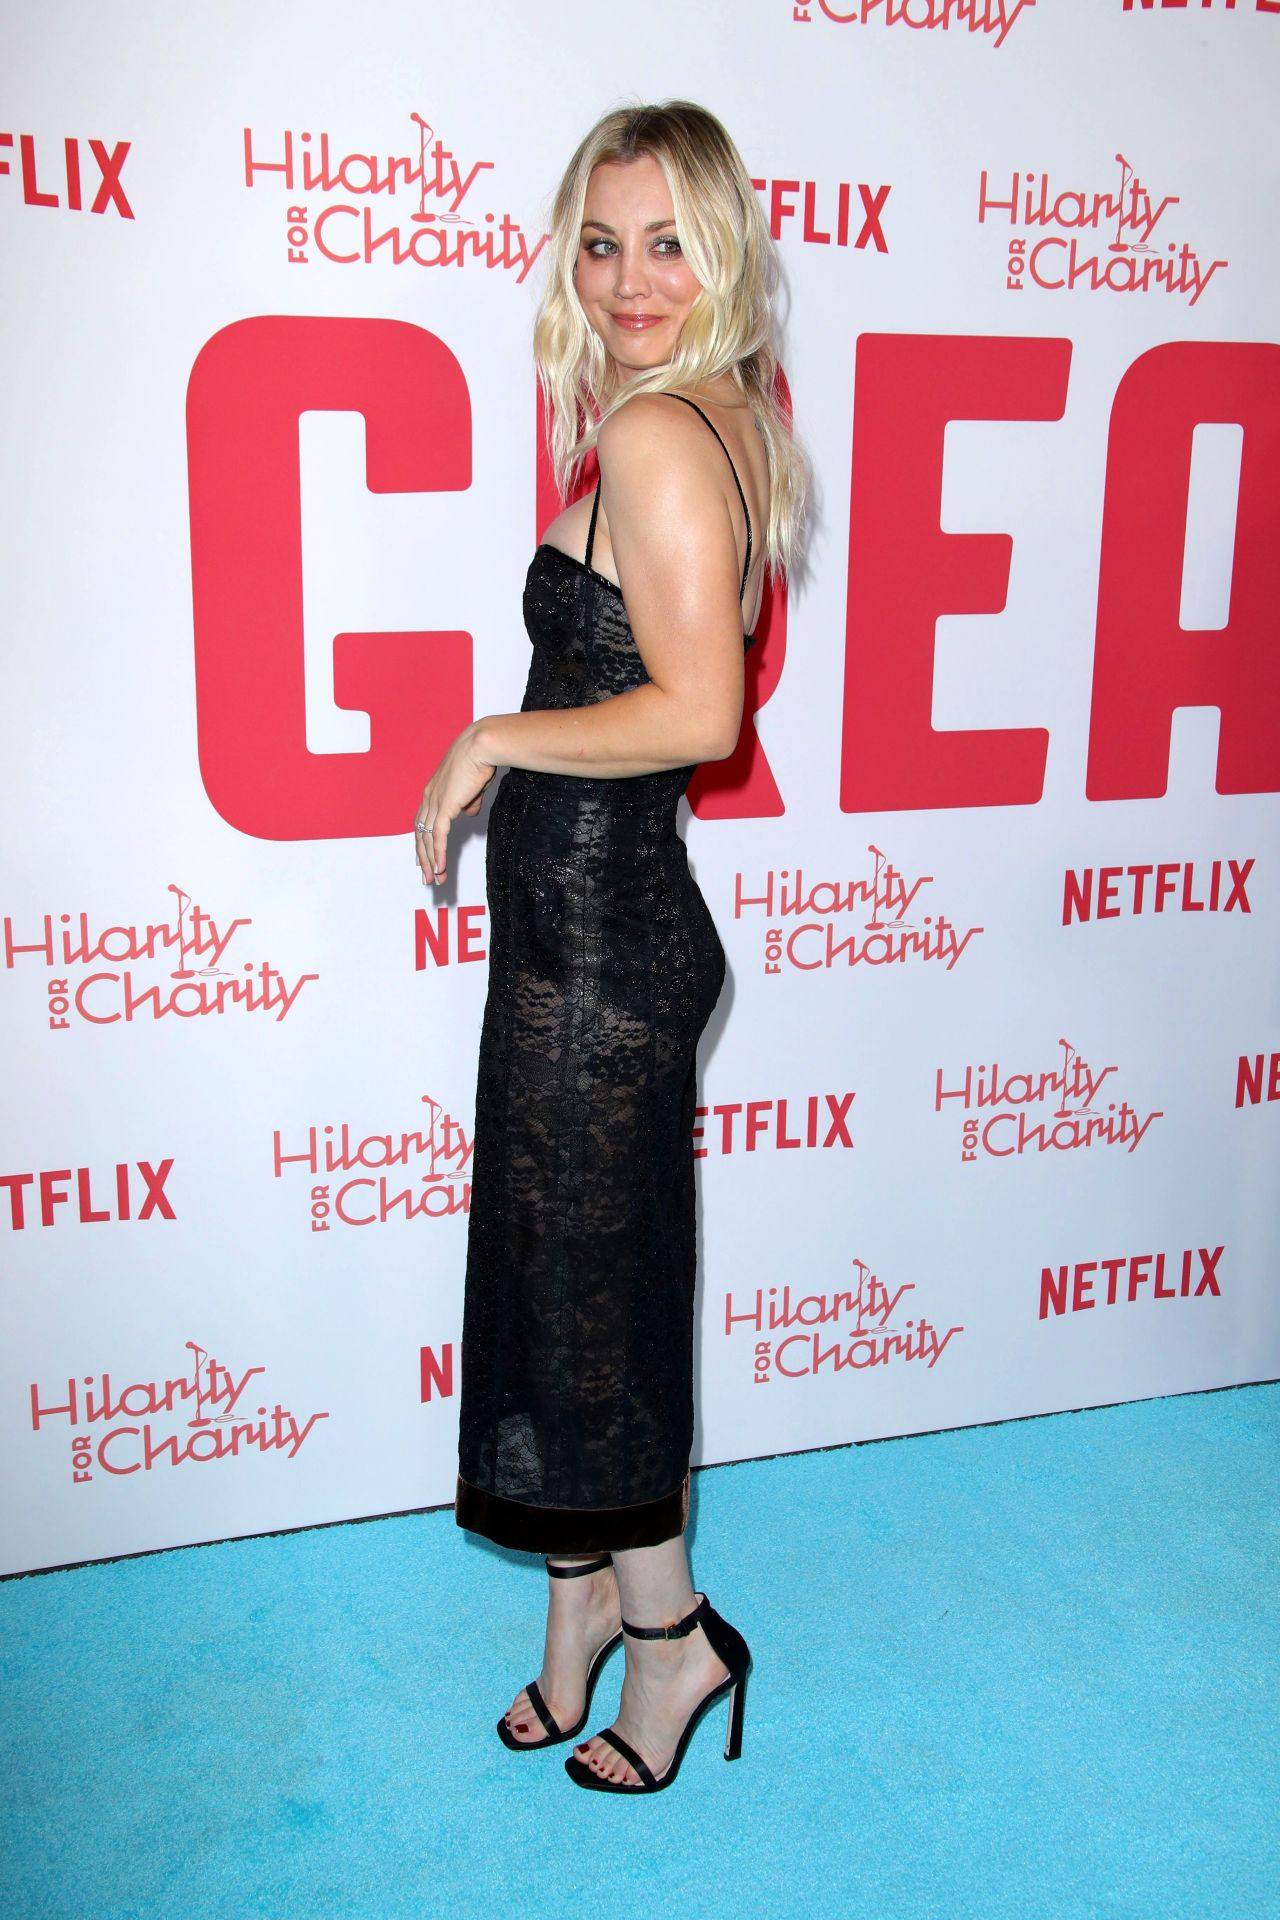 http://celebmafia.com/wp-content/uploads/2018/03/kaley-cuoco-hilarity-for-charity-s-variety-show-in-la-1.jpg